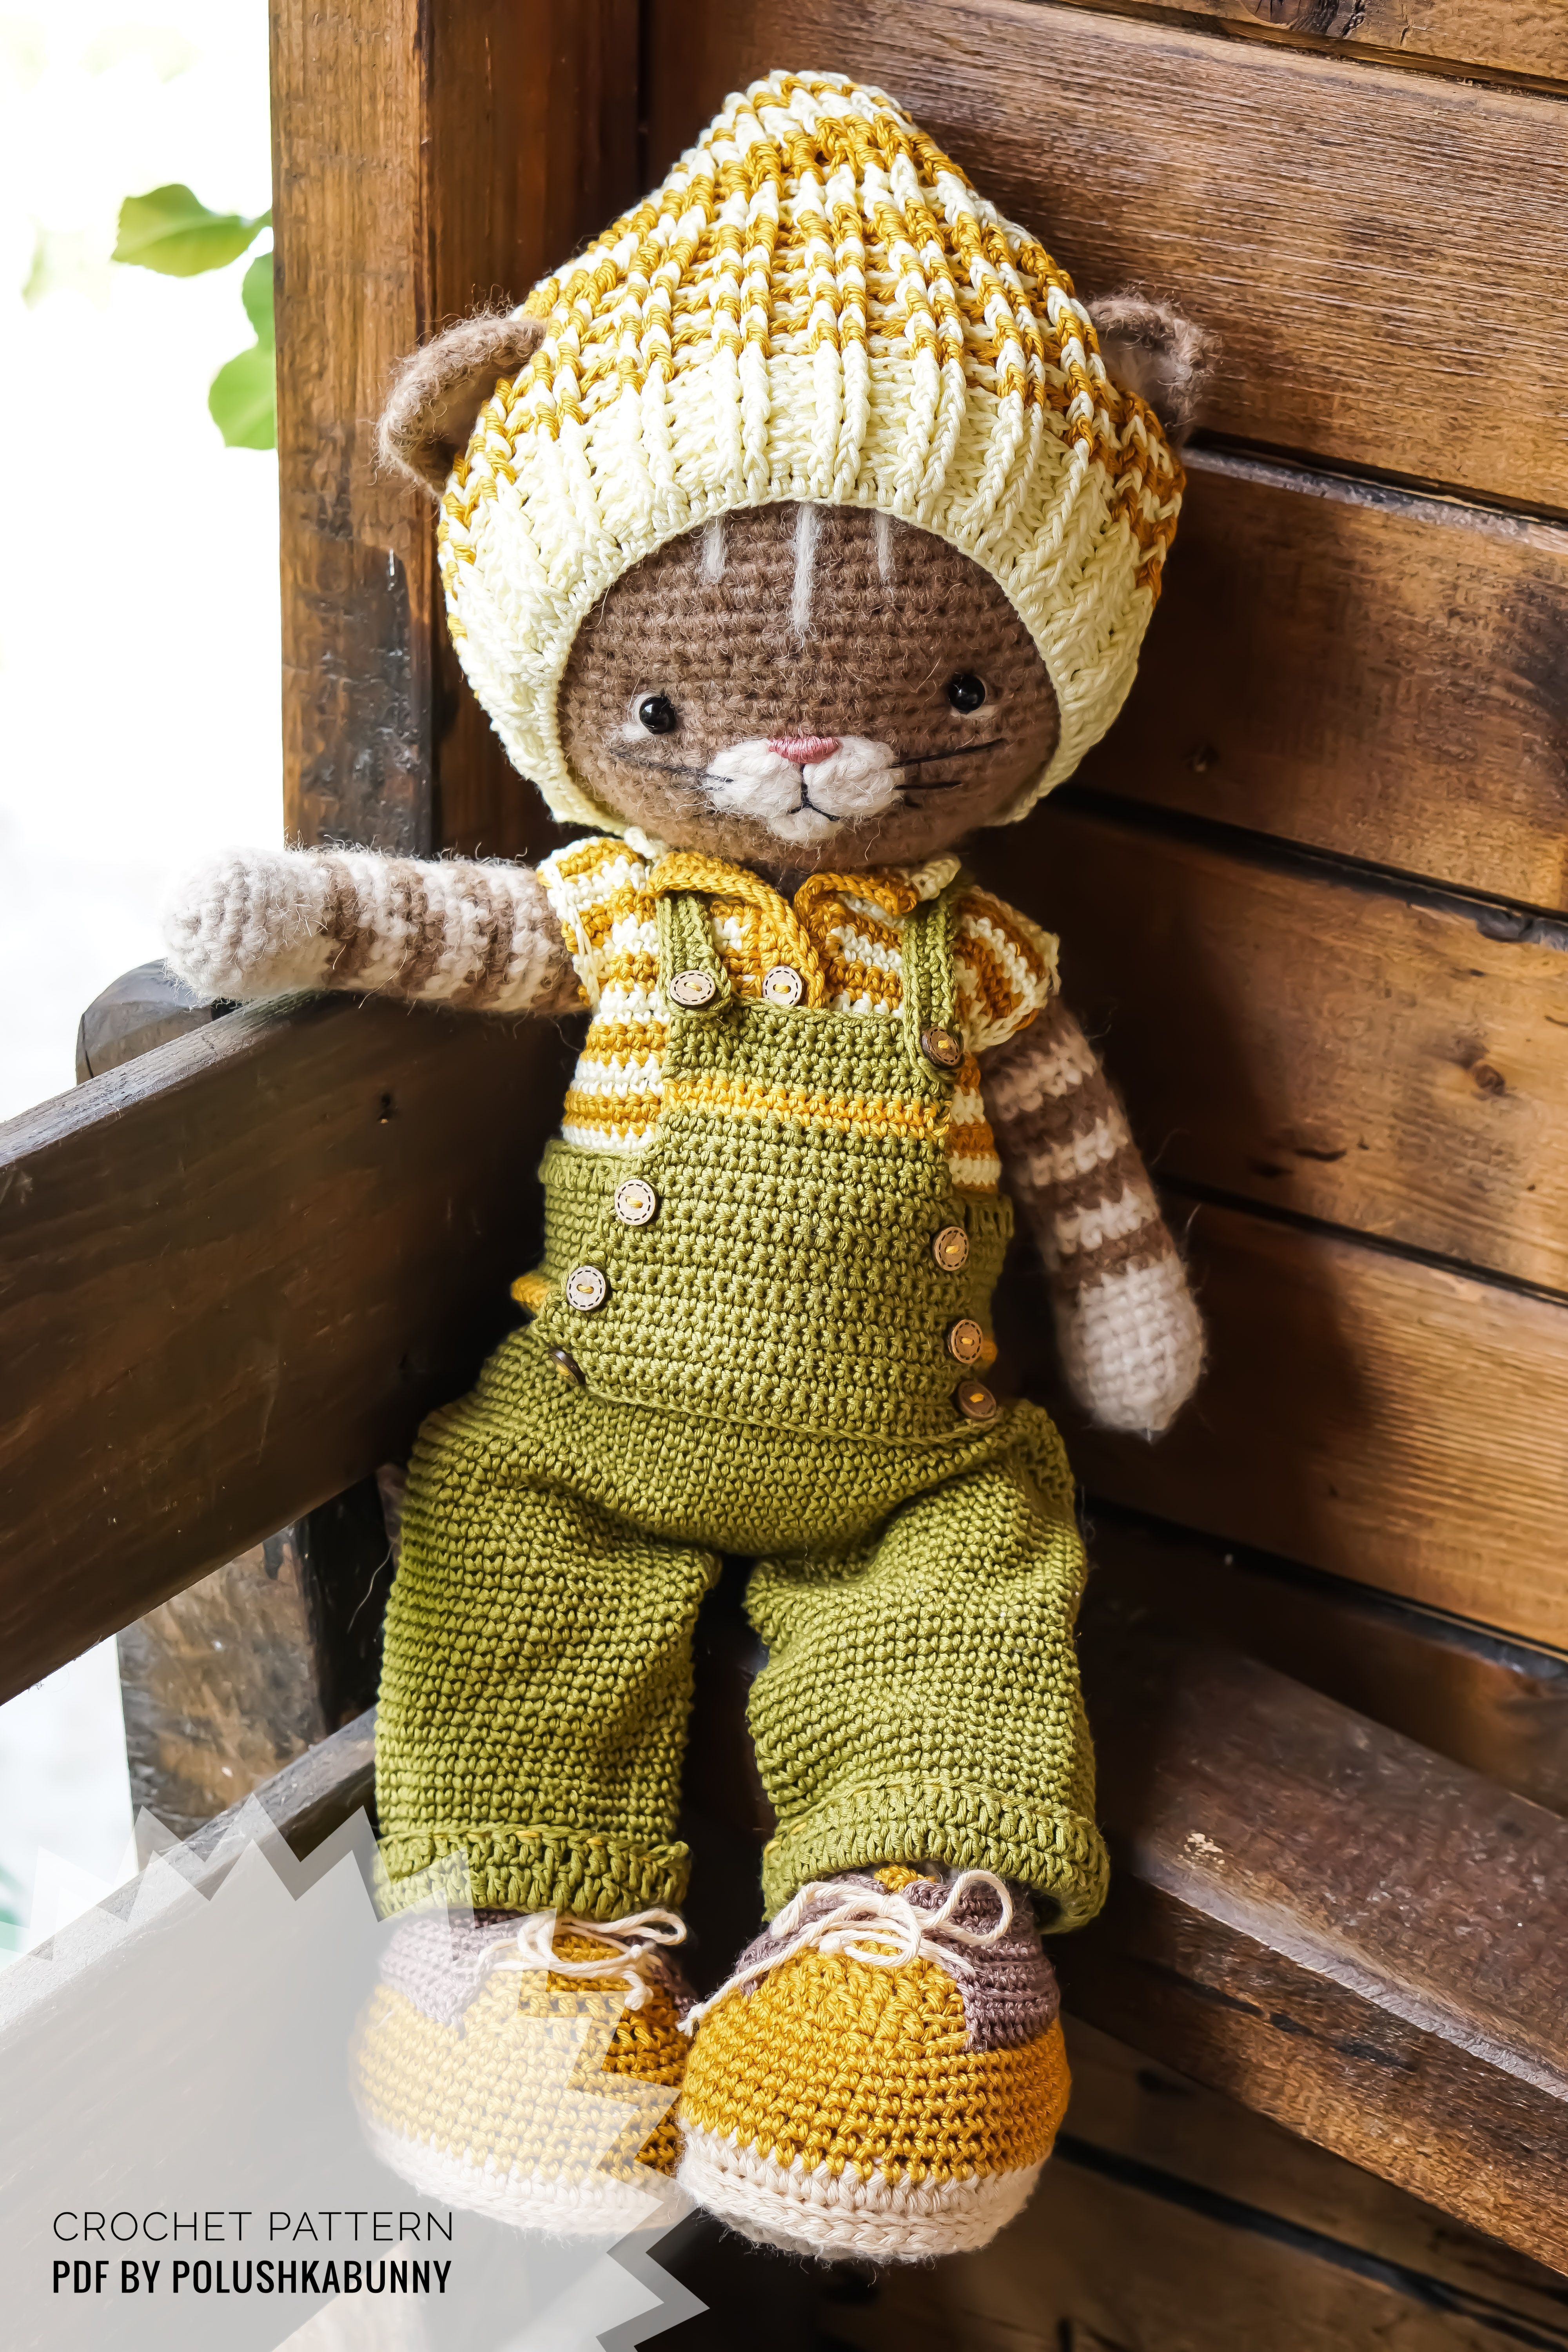 Crochet pattern Farmer Boy Outfit for Cat Toy By PolushkaBunny #crochet #farm #outfit #cat #pattern #stuffed #animal #baby #shower #plush #toy #handmade #diy #craft #amigurumi #doll #costume